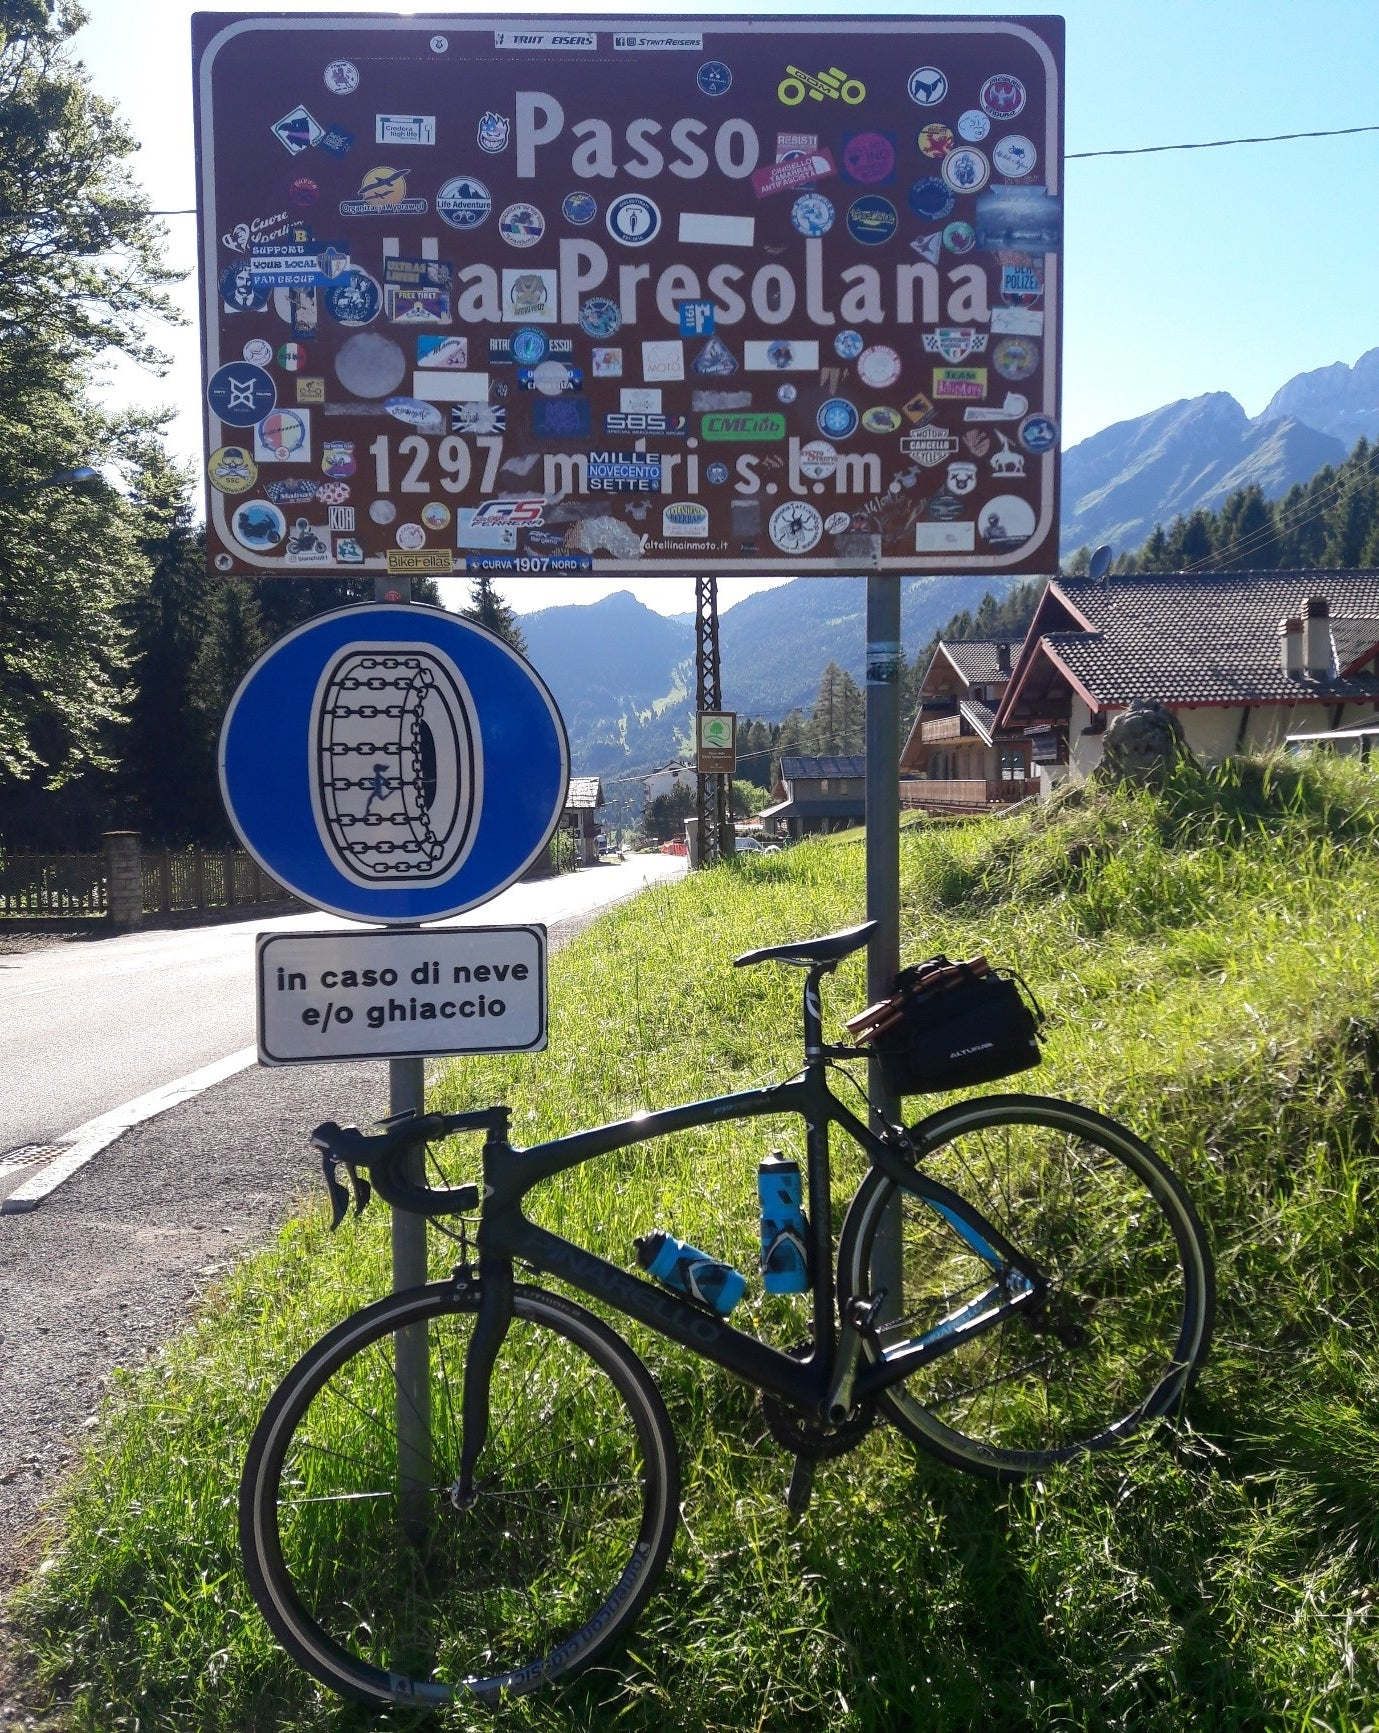 The Passo della Presolana. The final climb of the trip.